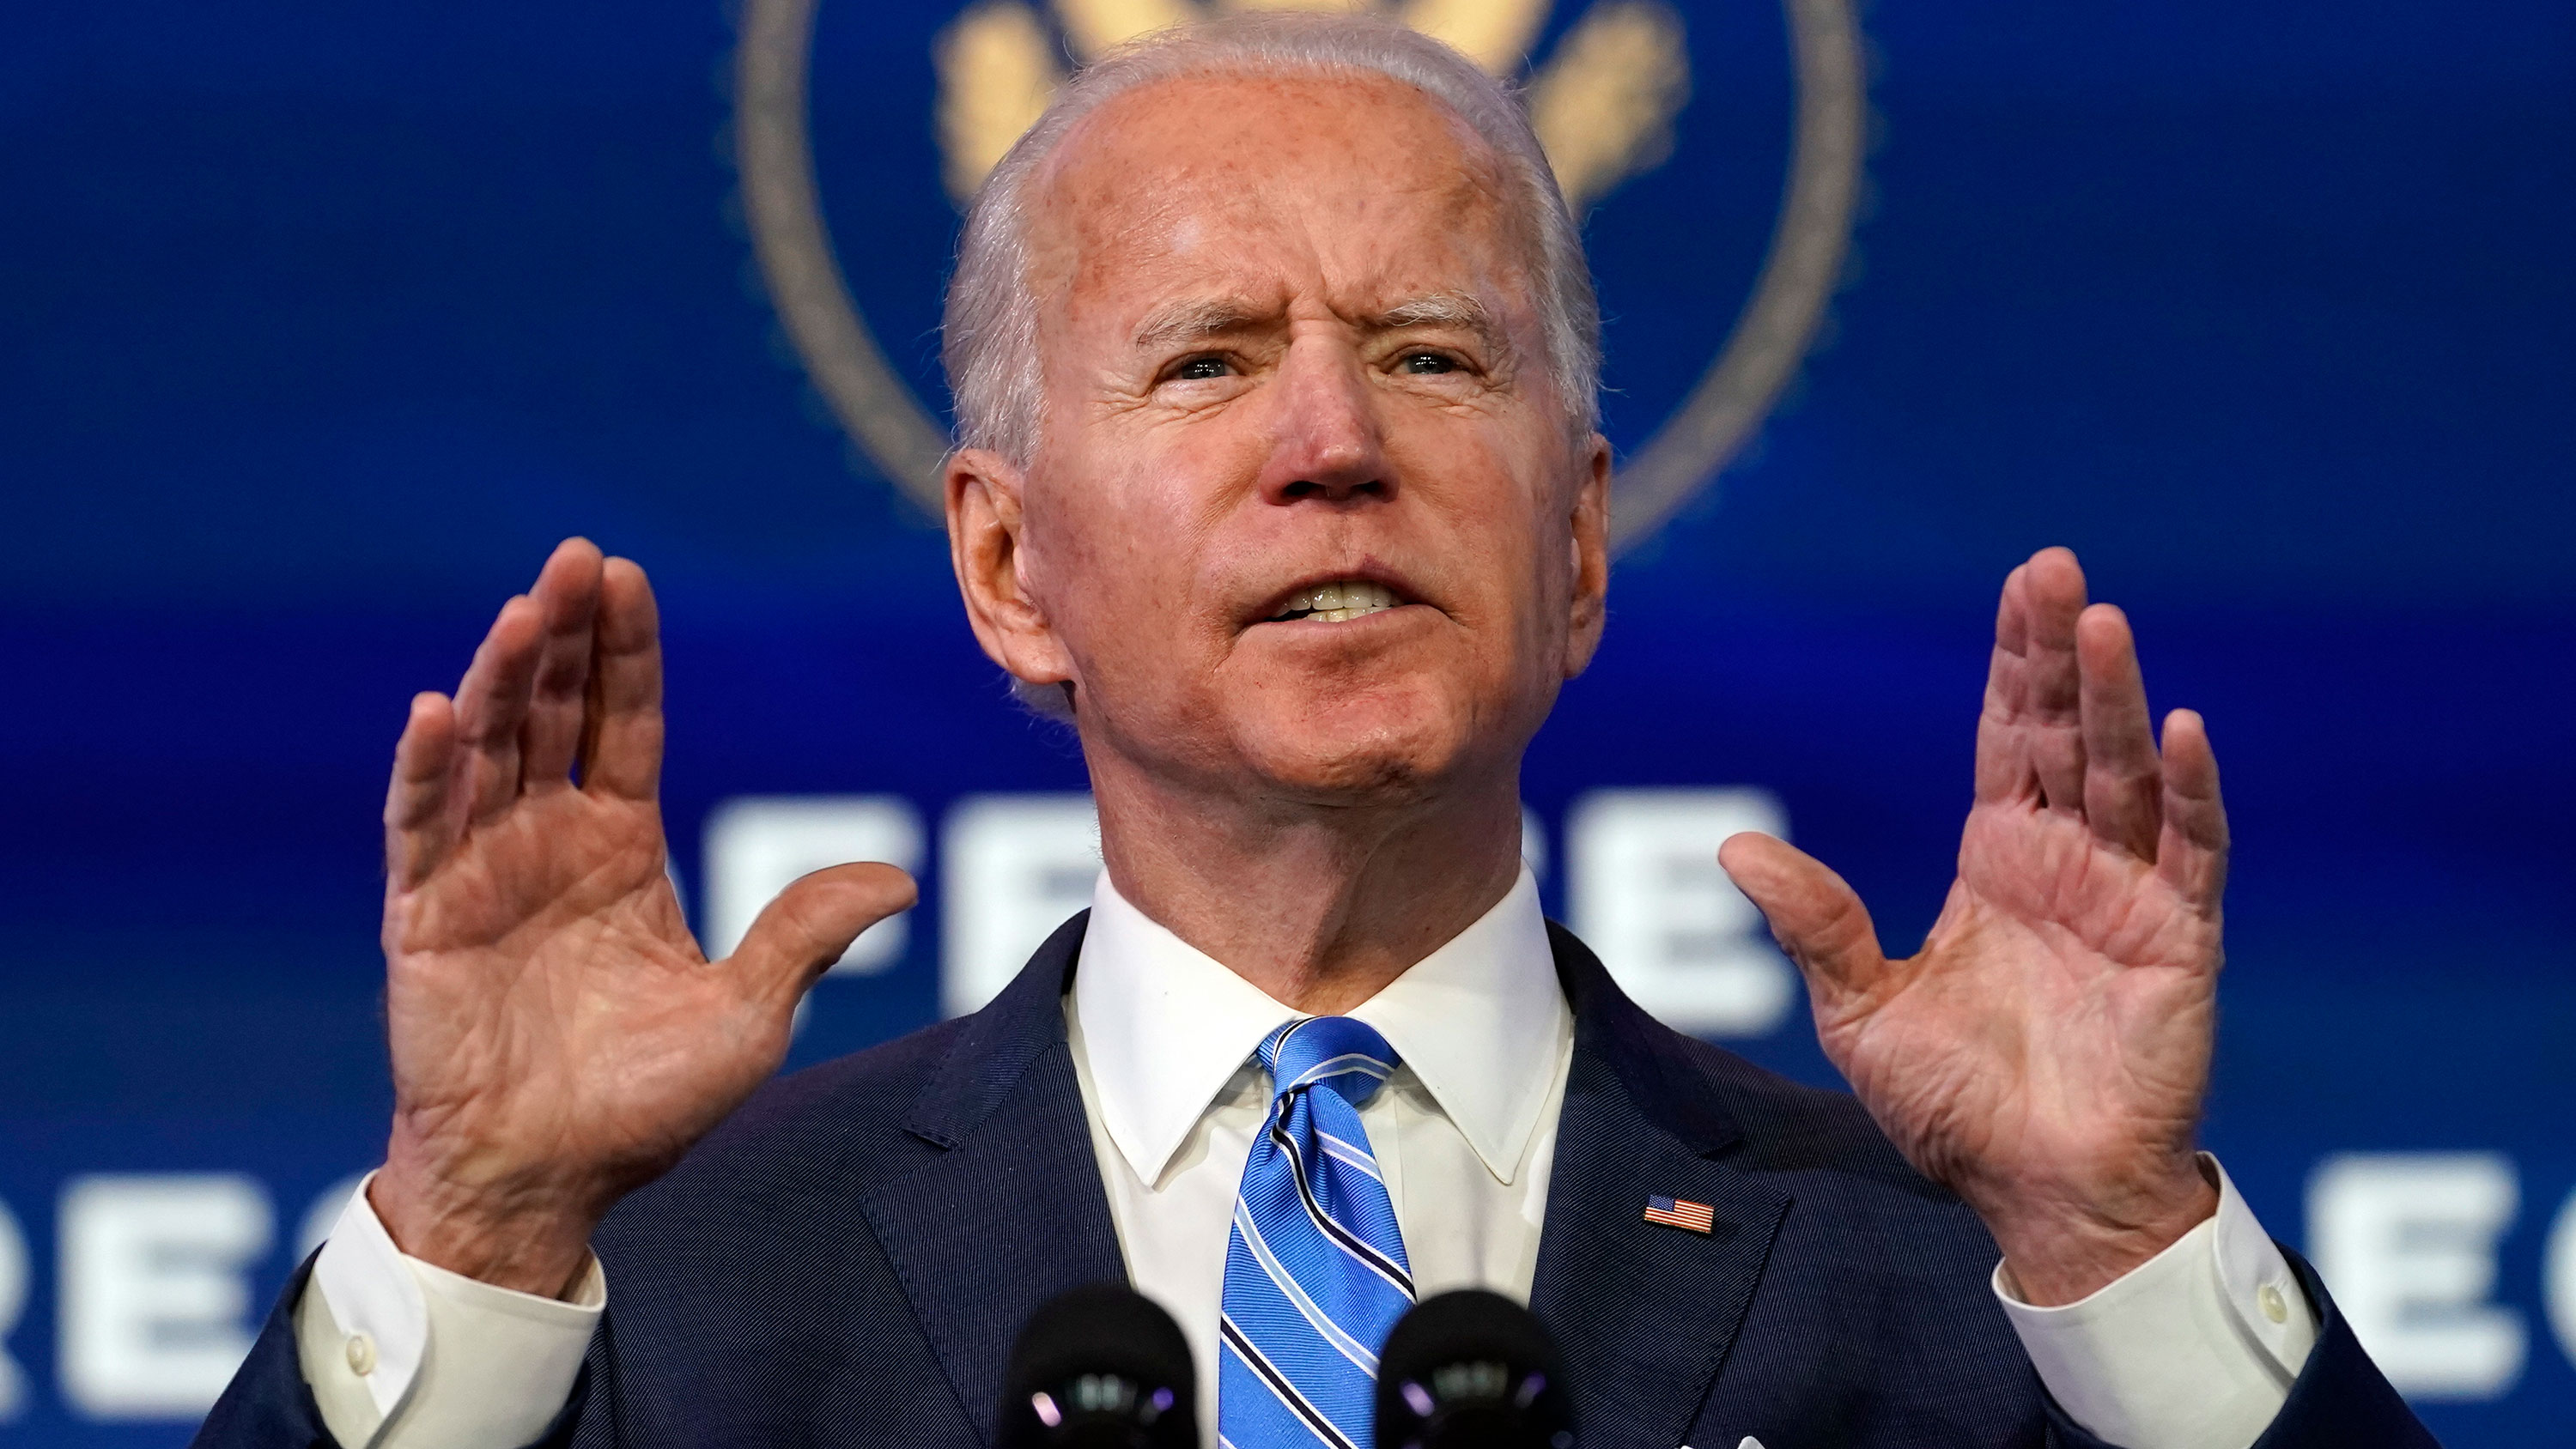 Biden targets Trump's legacy with first-day executive actions